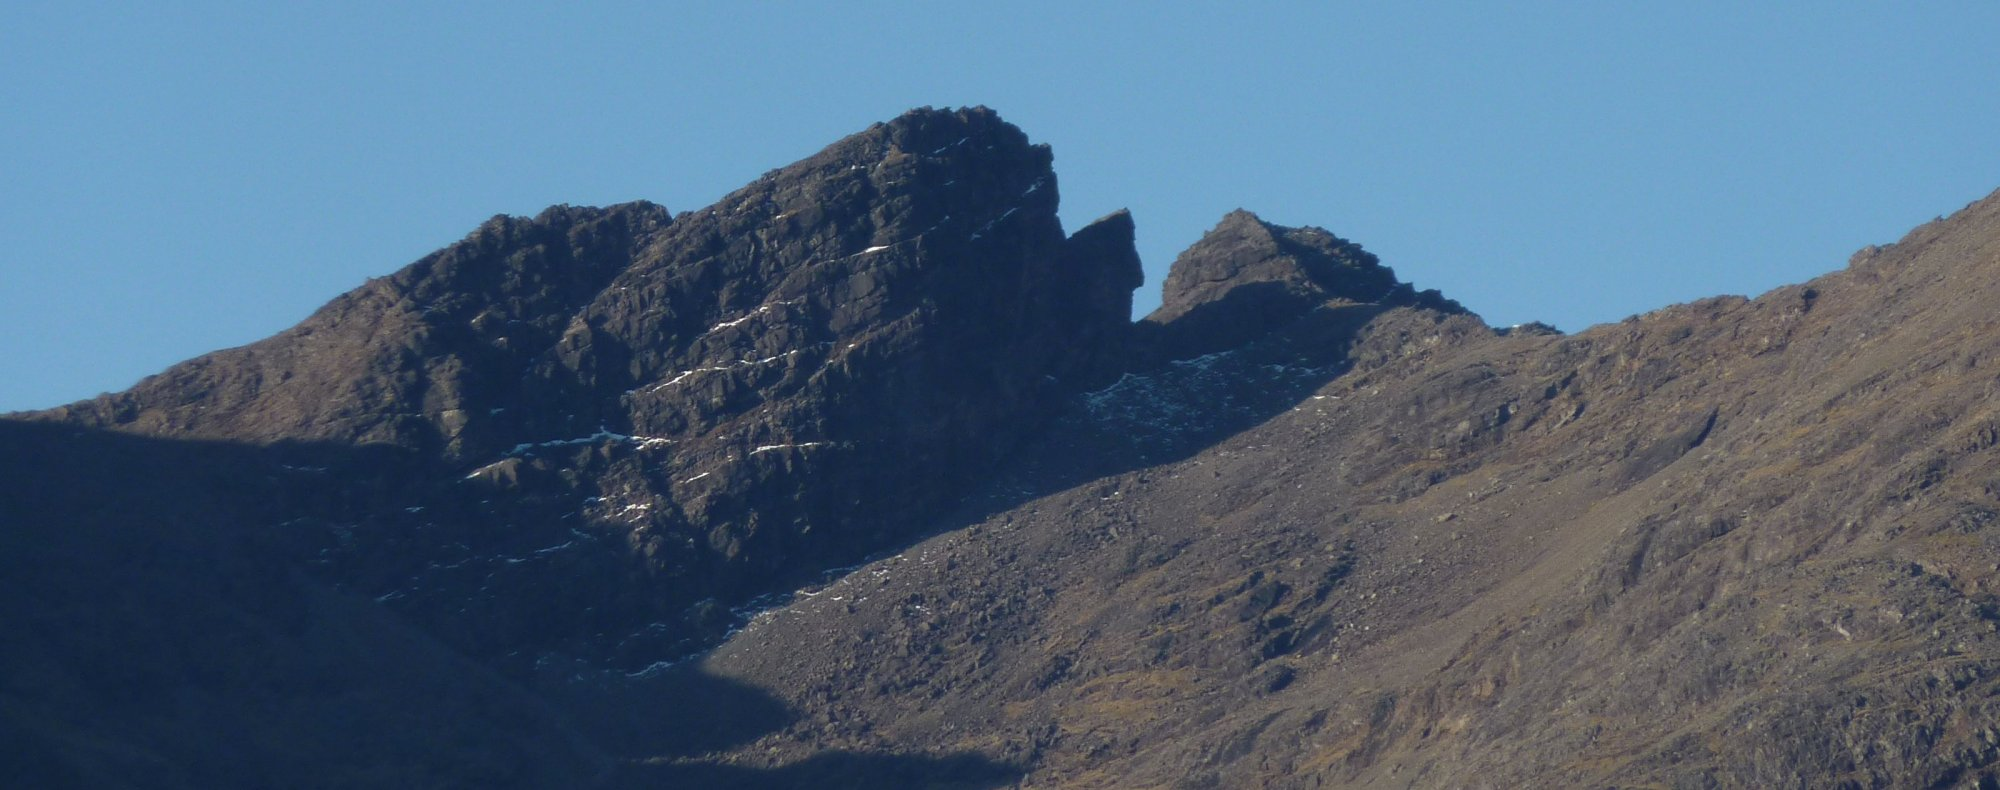 That's the rock (I think) that Macleod and Ramirez are sparring on in Highlander